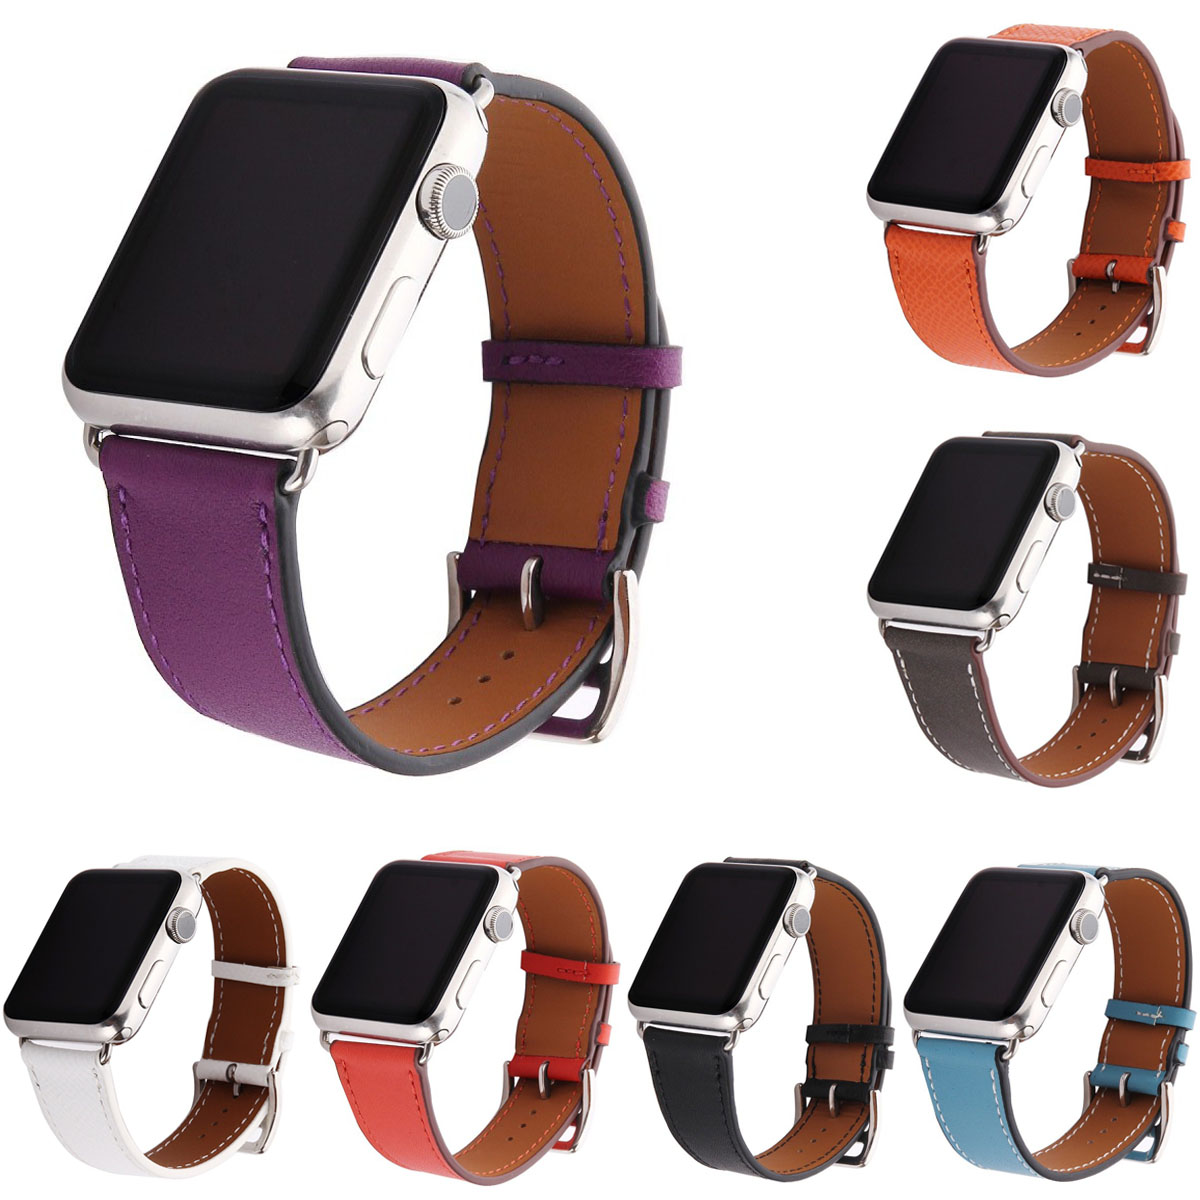 DAHASE Litchi Genuine Leather Band for Apple Watch Series 1 2 3 Strap for iWatch Classic Watchband 42mm 38mm With Adapters